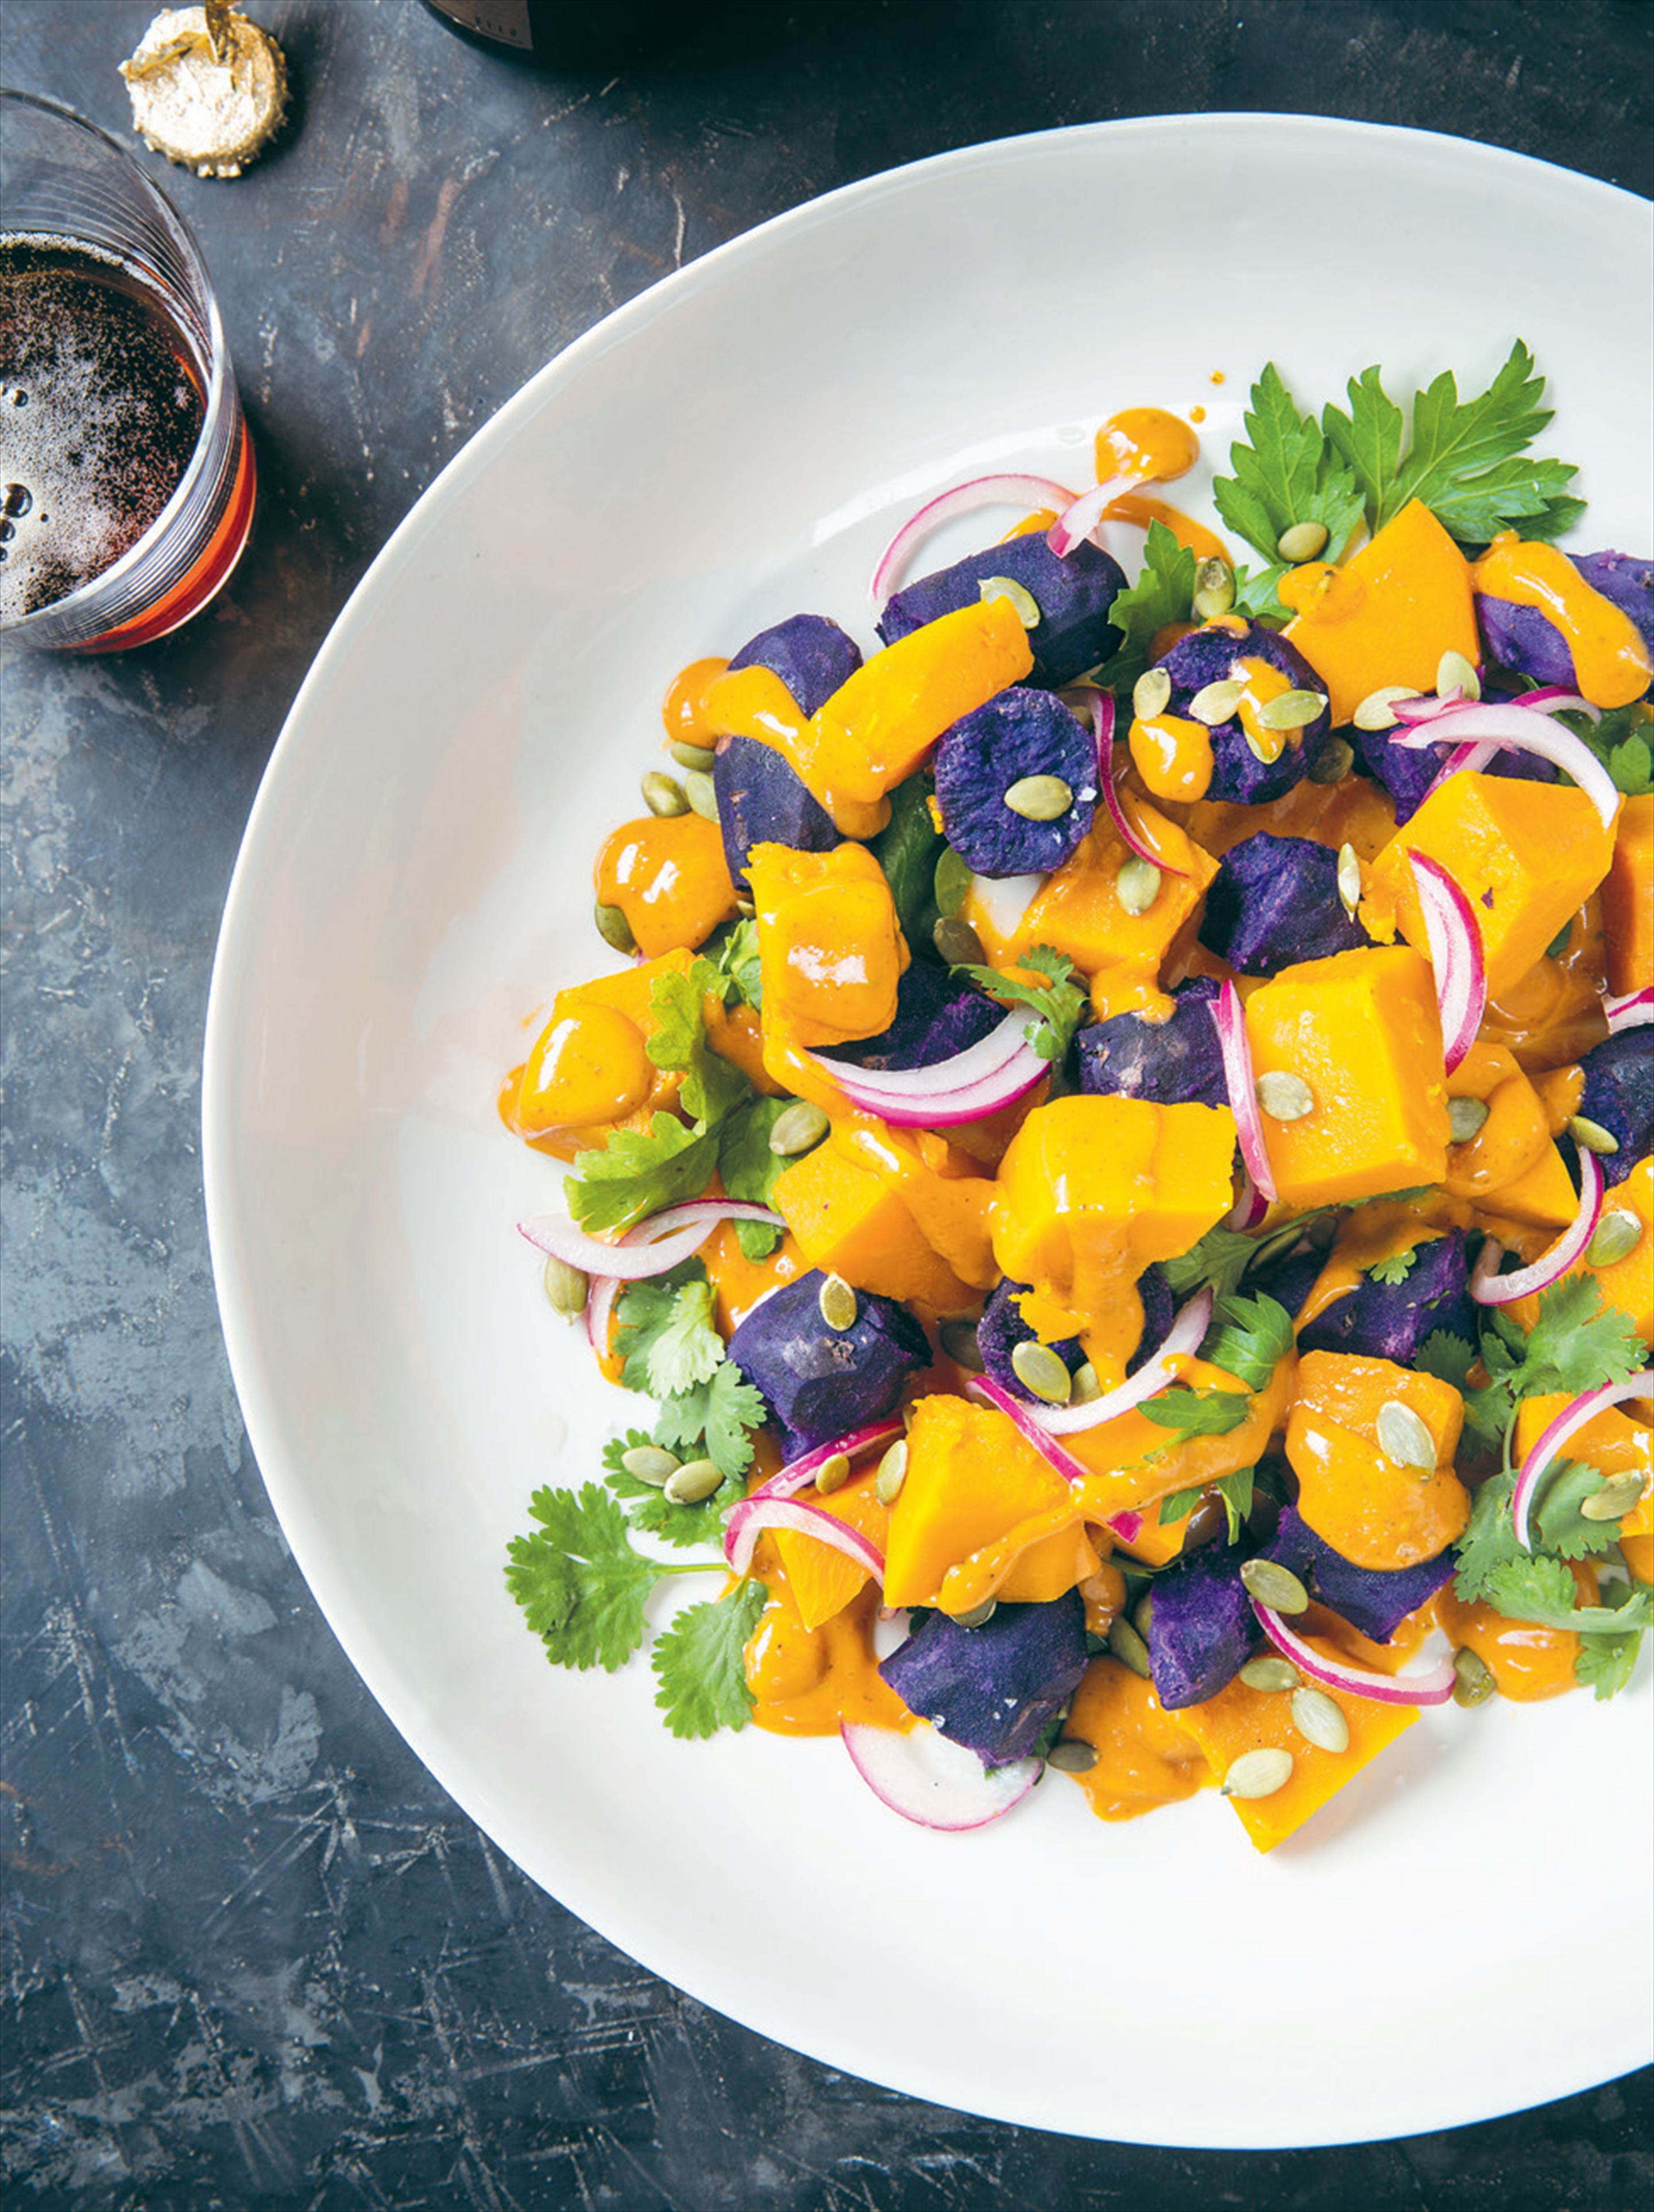 Peruvian purple potato & pumpkin salad